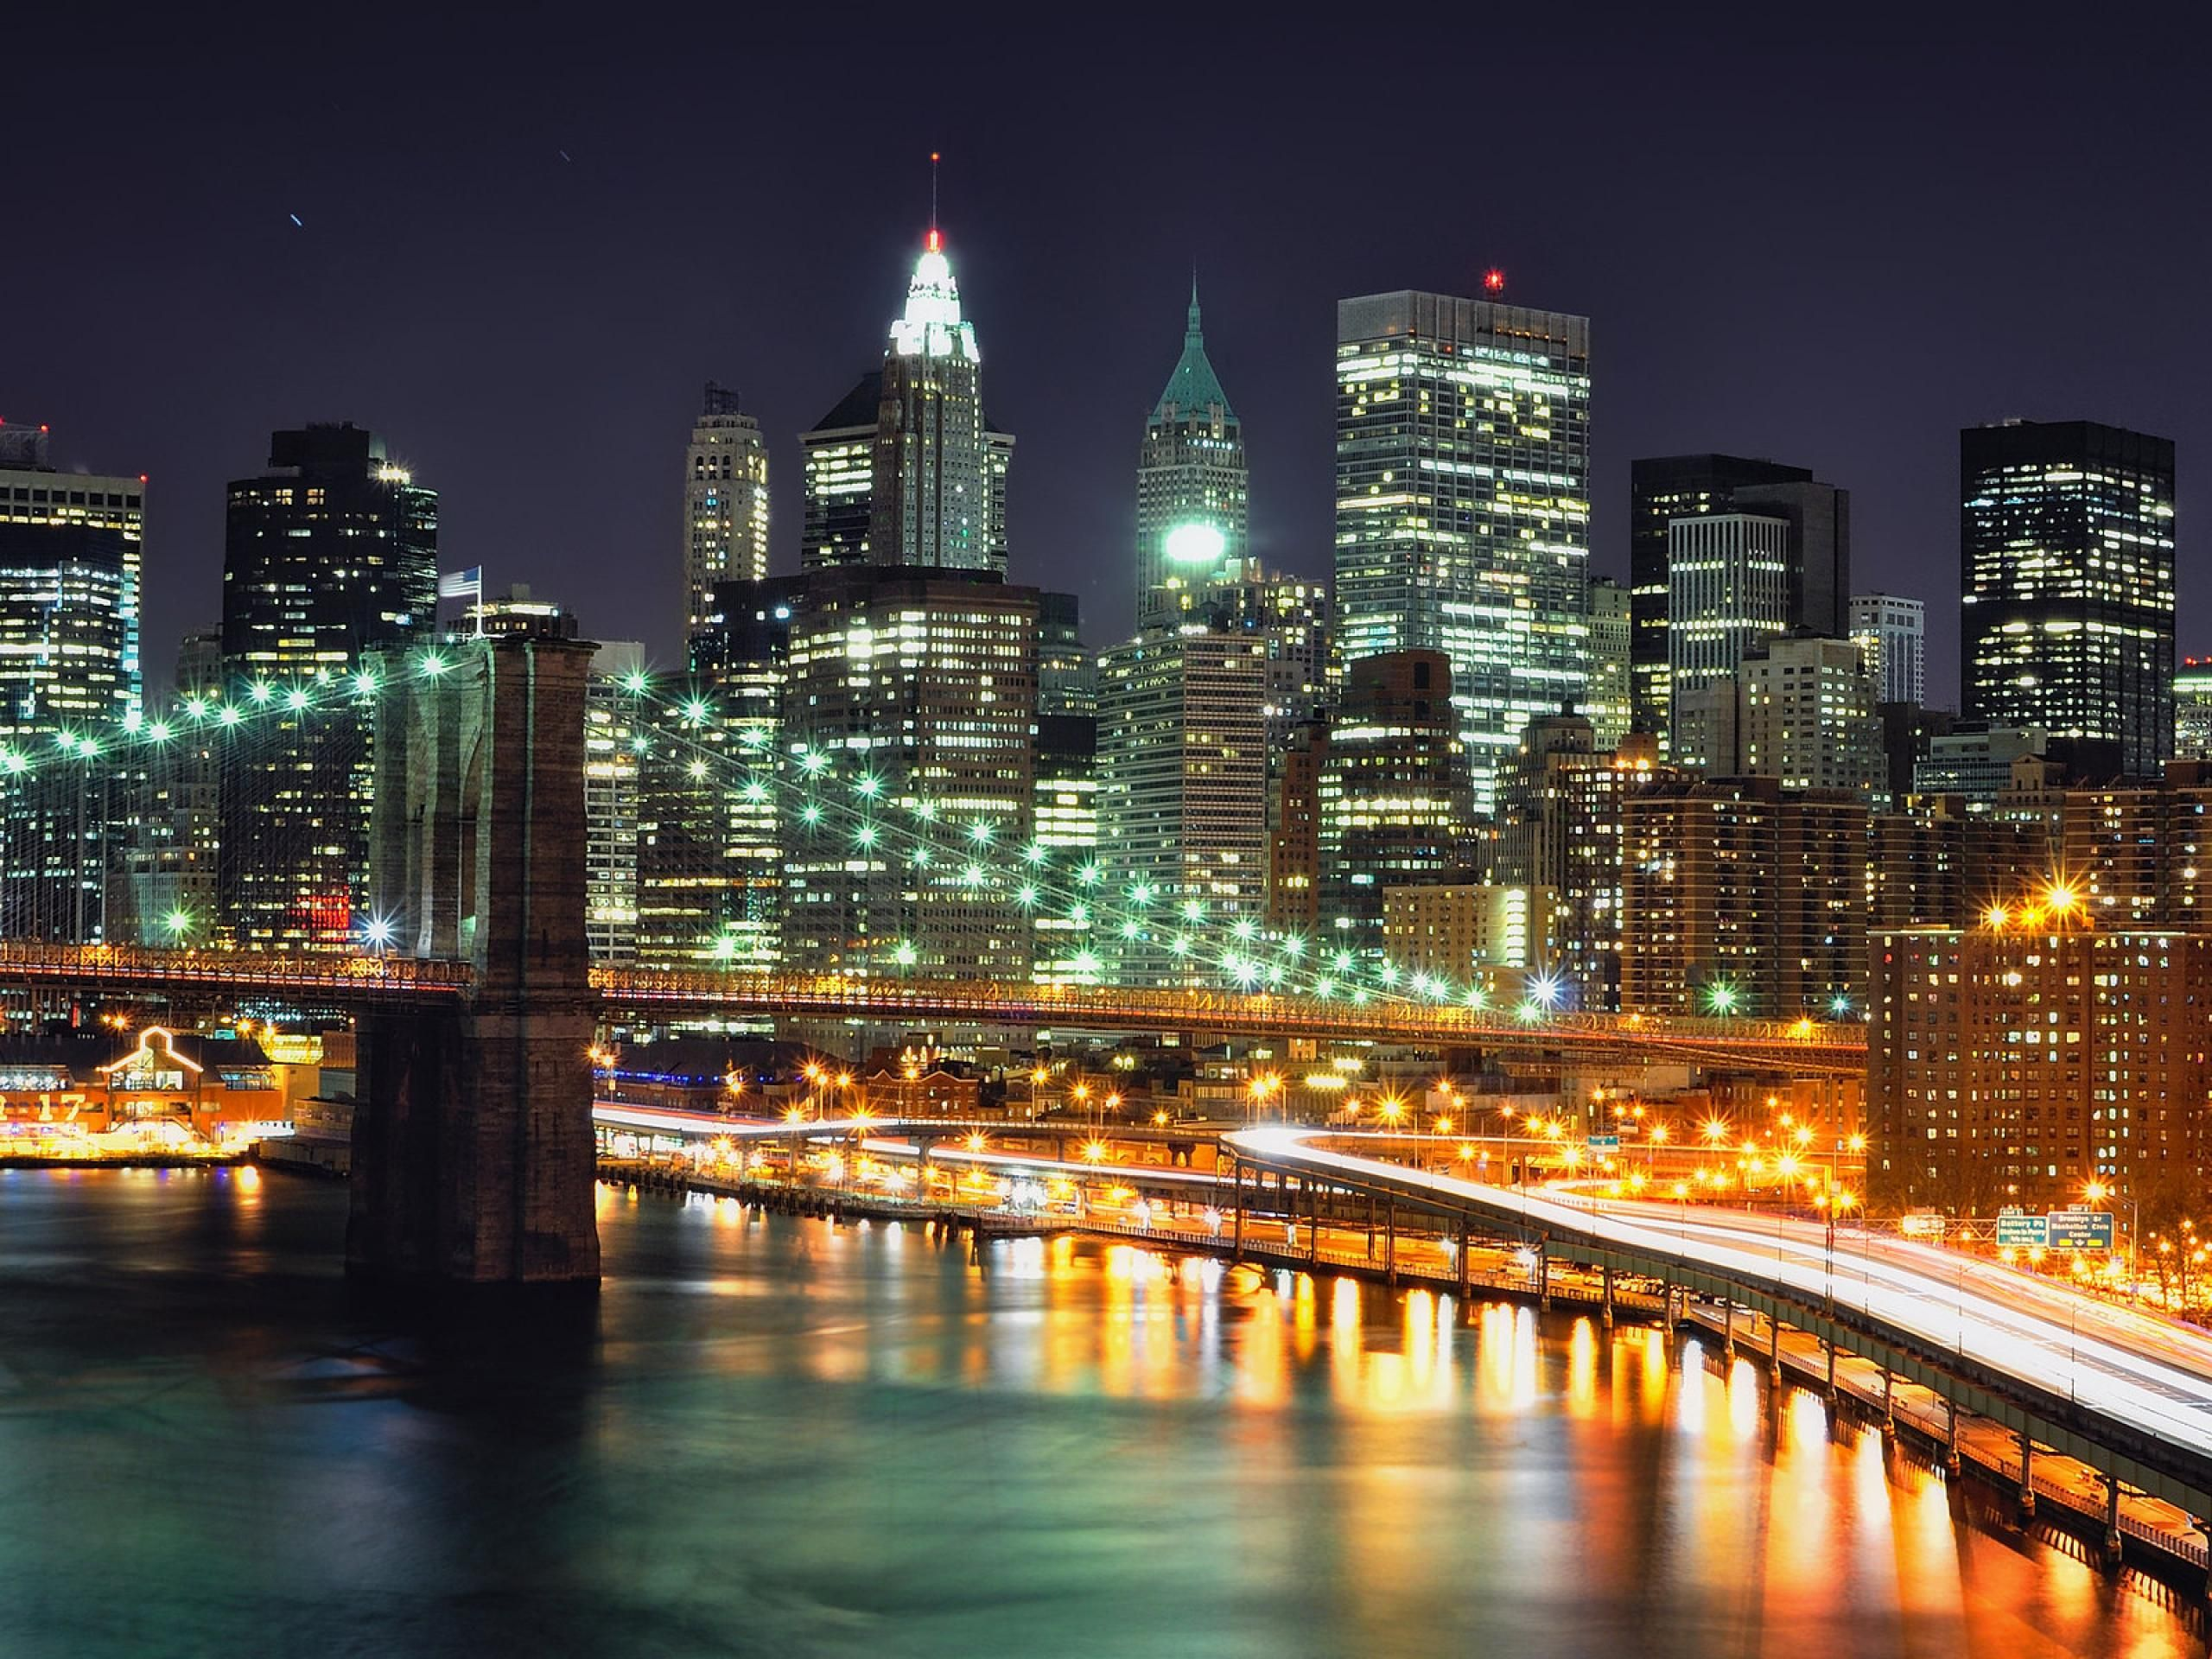 New york city nyc free desktop wallpapers for widescreen hd and new york city nyc free desktop wallpapers for widescreen hd and mobile voltagebd Images